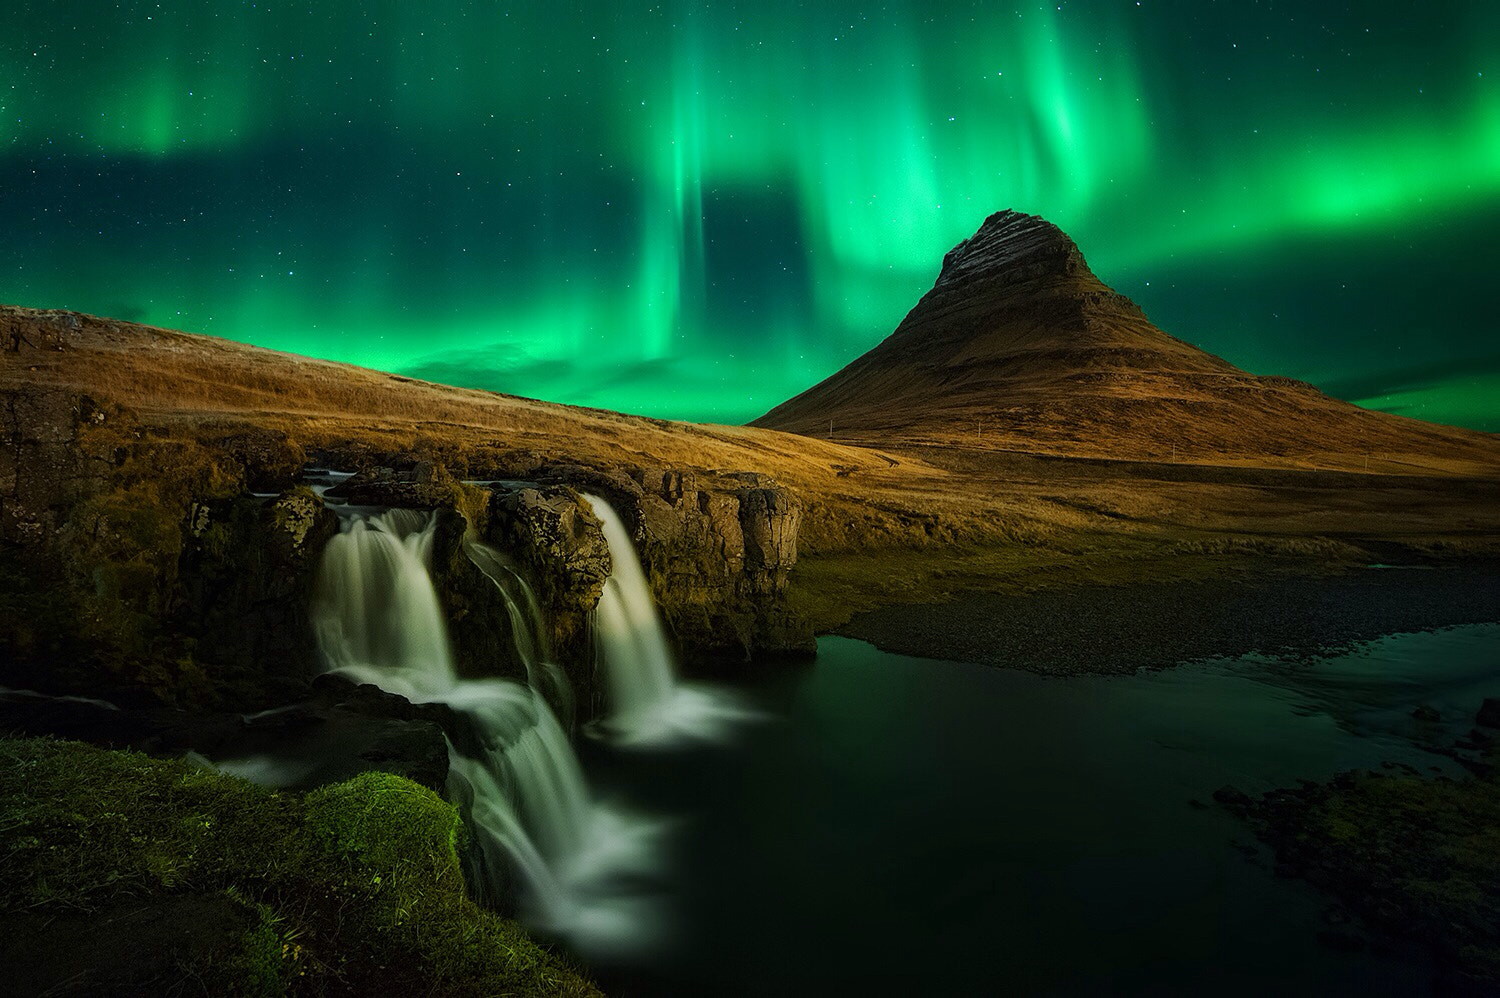 Photograph The Color of Iceland by Michael Thien on 500px